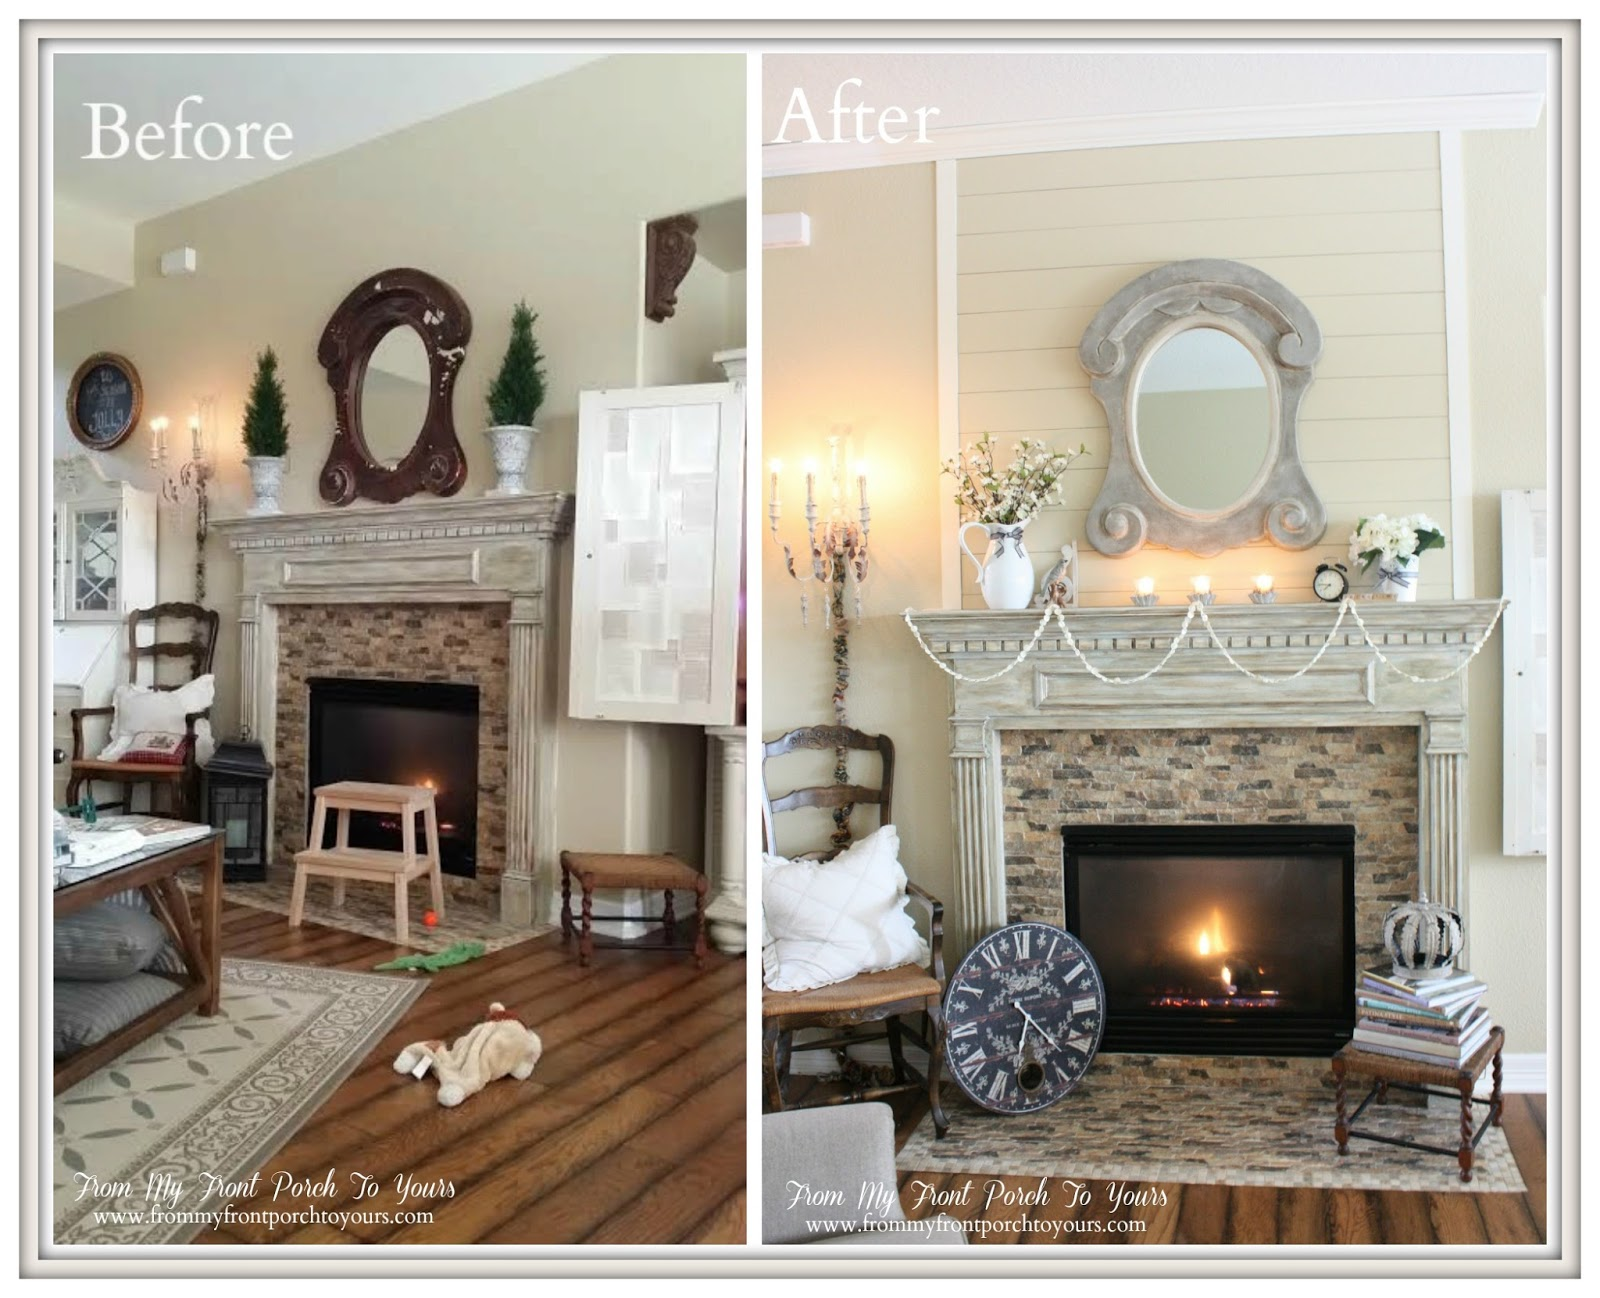 From My Front Porch To Yours Planked Fireplace Before & After Collage